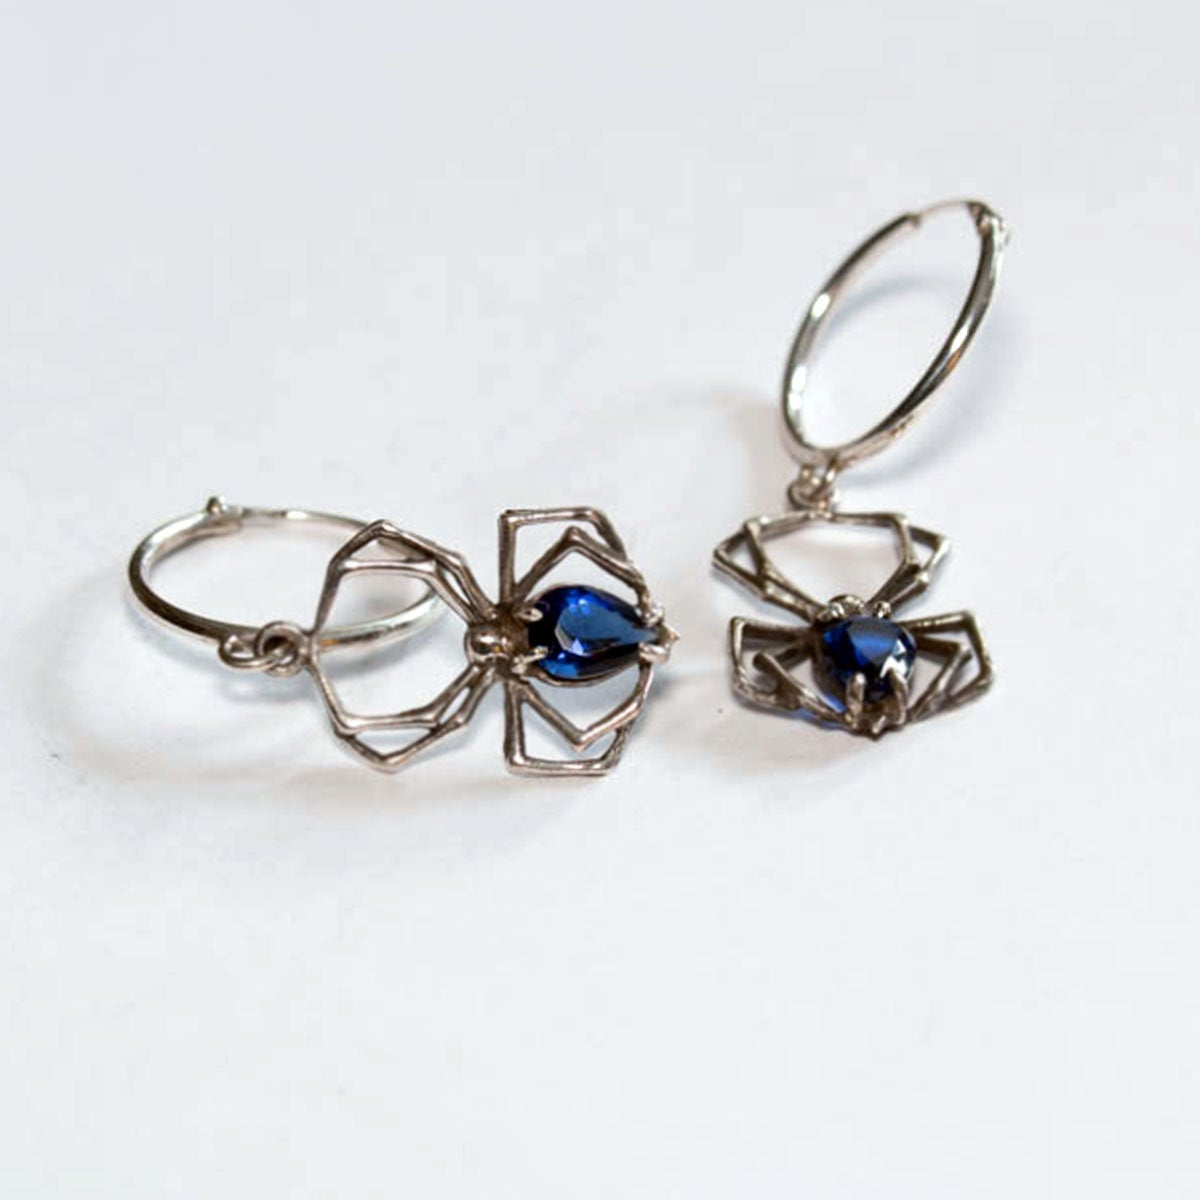 Cobalt Blue Spider Hoops - Inchoo Bijoux